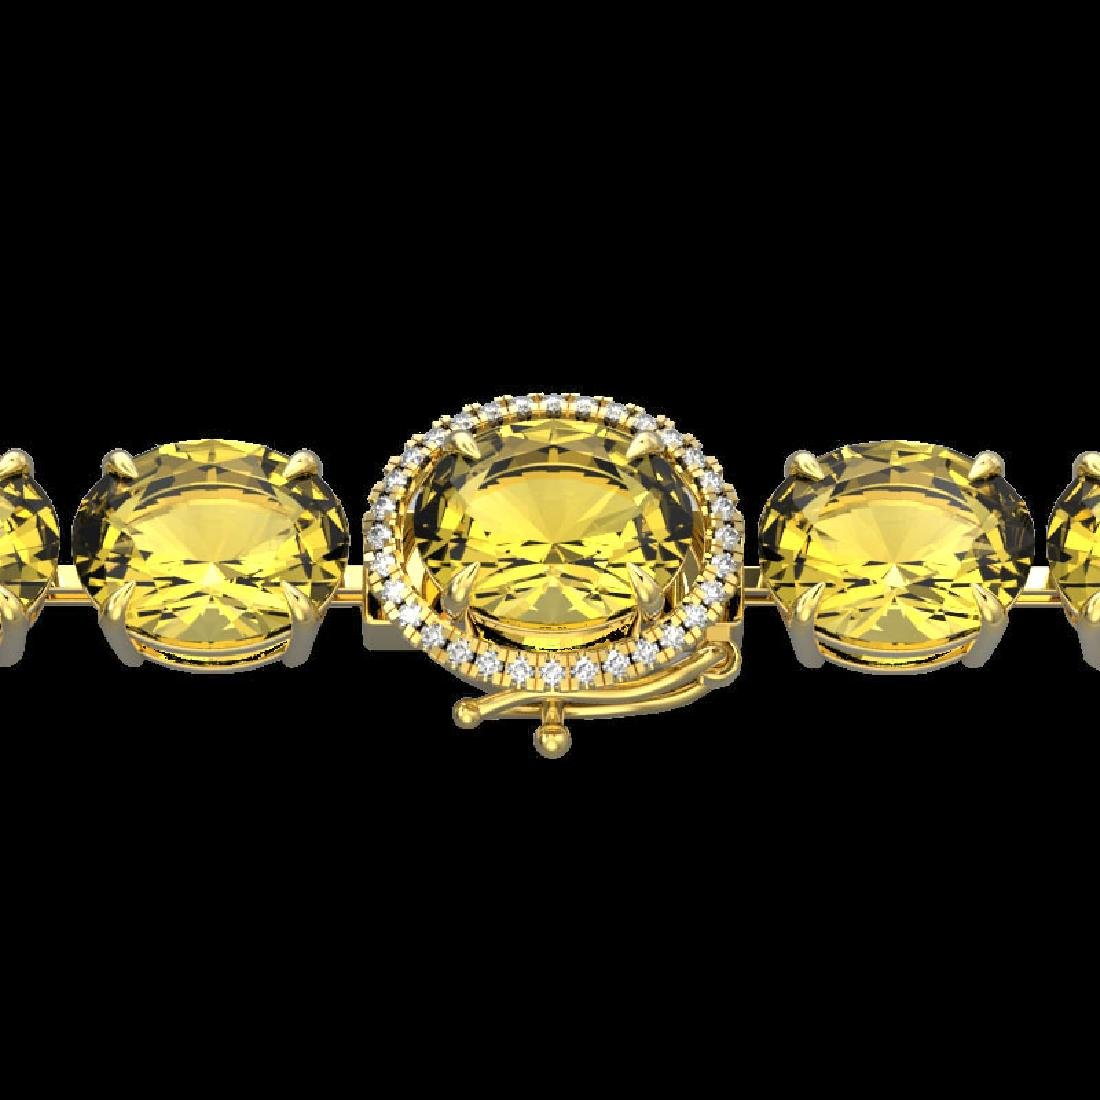 78 CTW Citrine & Micro Pave VS/SI Diamond Halo Bracelet